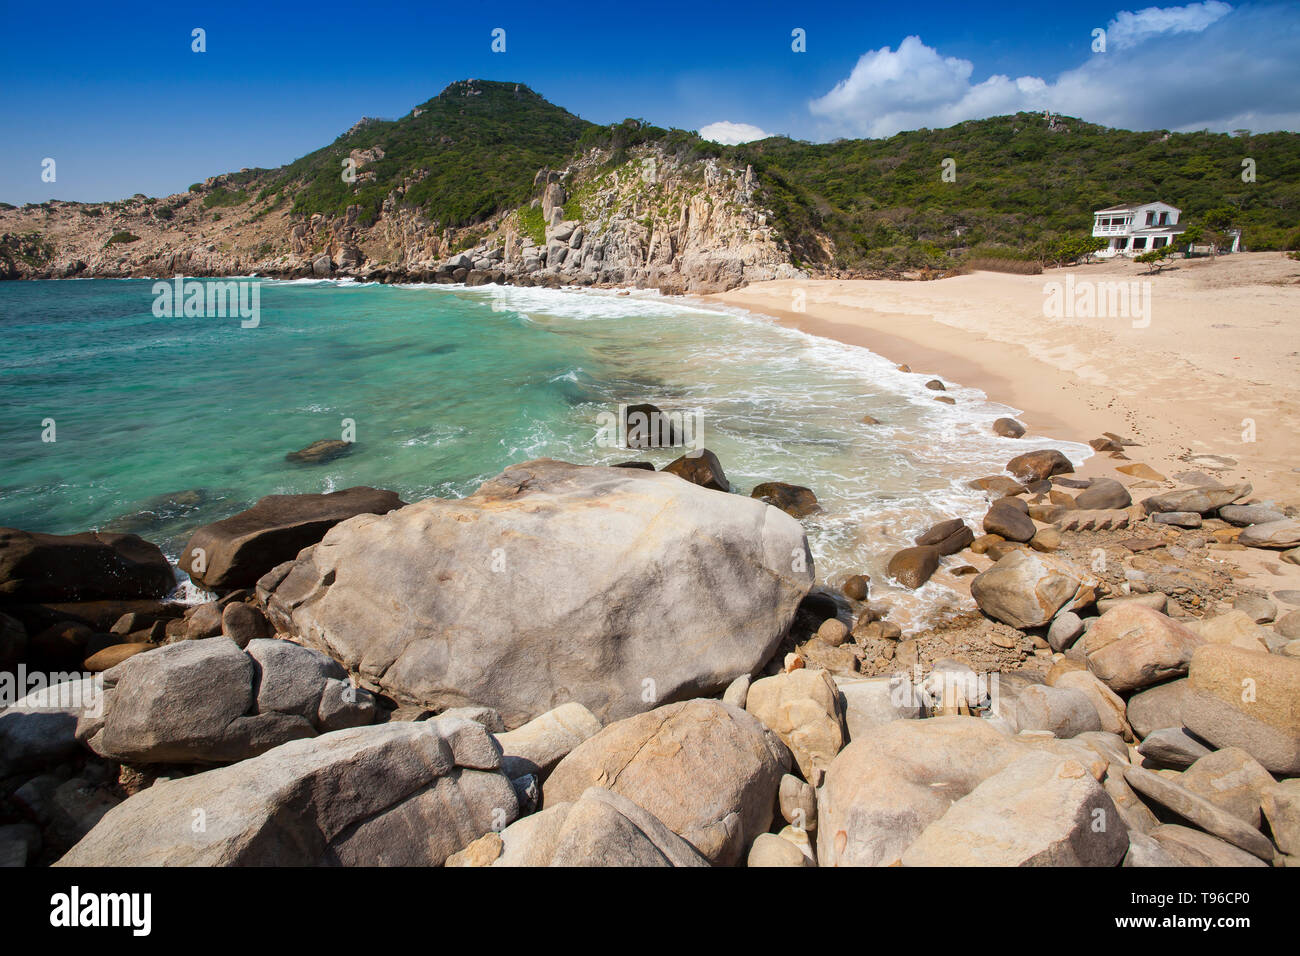 Lonely located beach at Vinh Hy, south china sea, Ninh Thuan, Vietnam - Stock Image